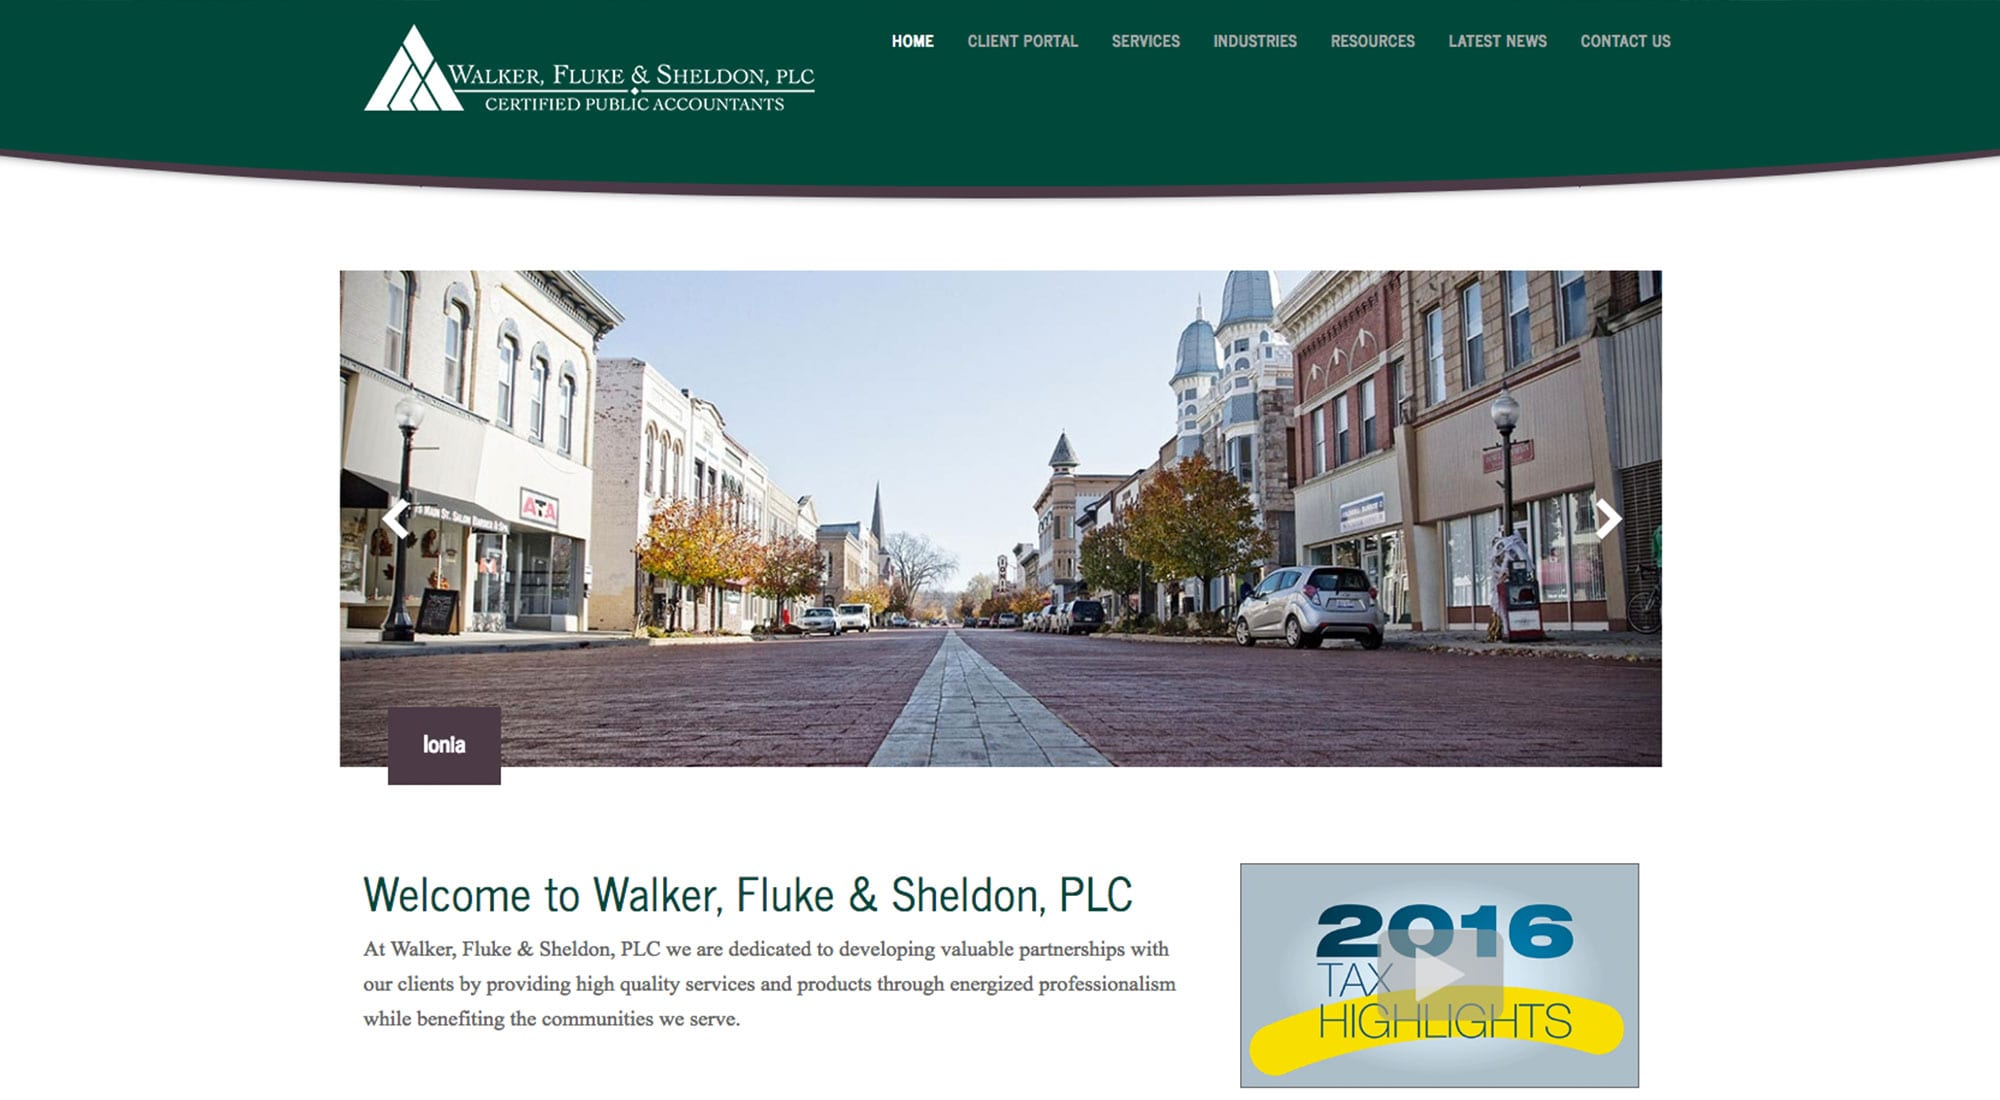 Walker, Fluke & Sheldon Marketing by Pixelvine